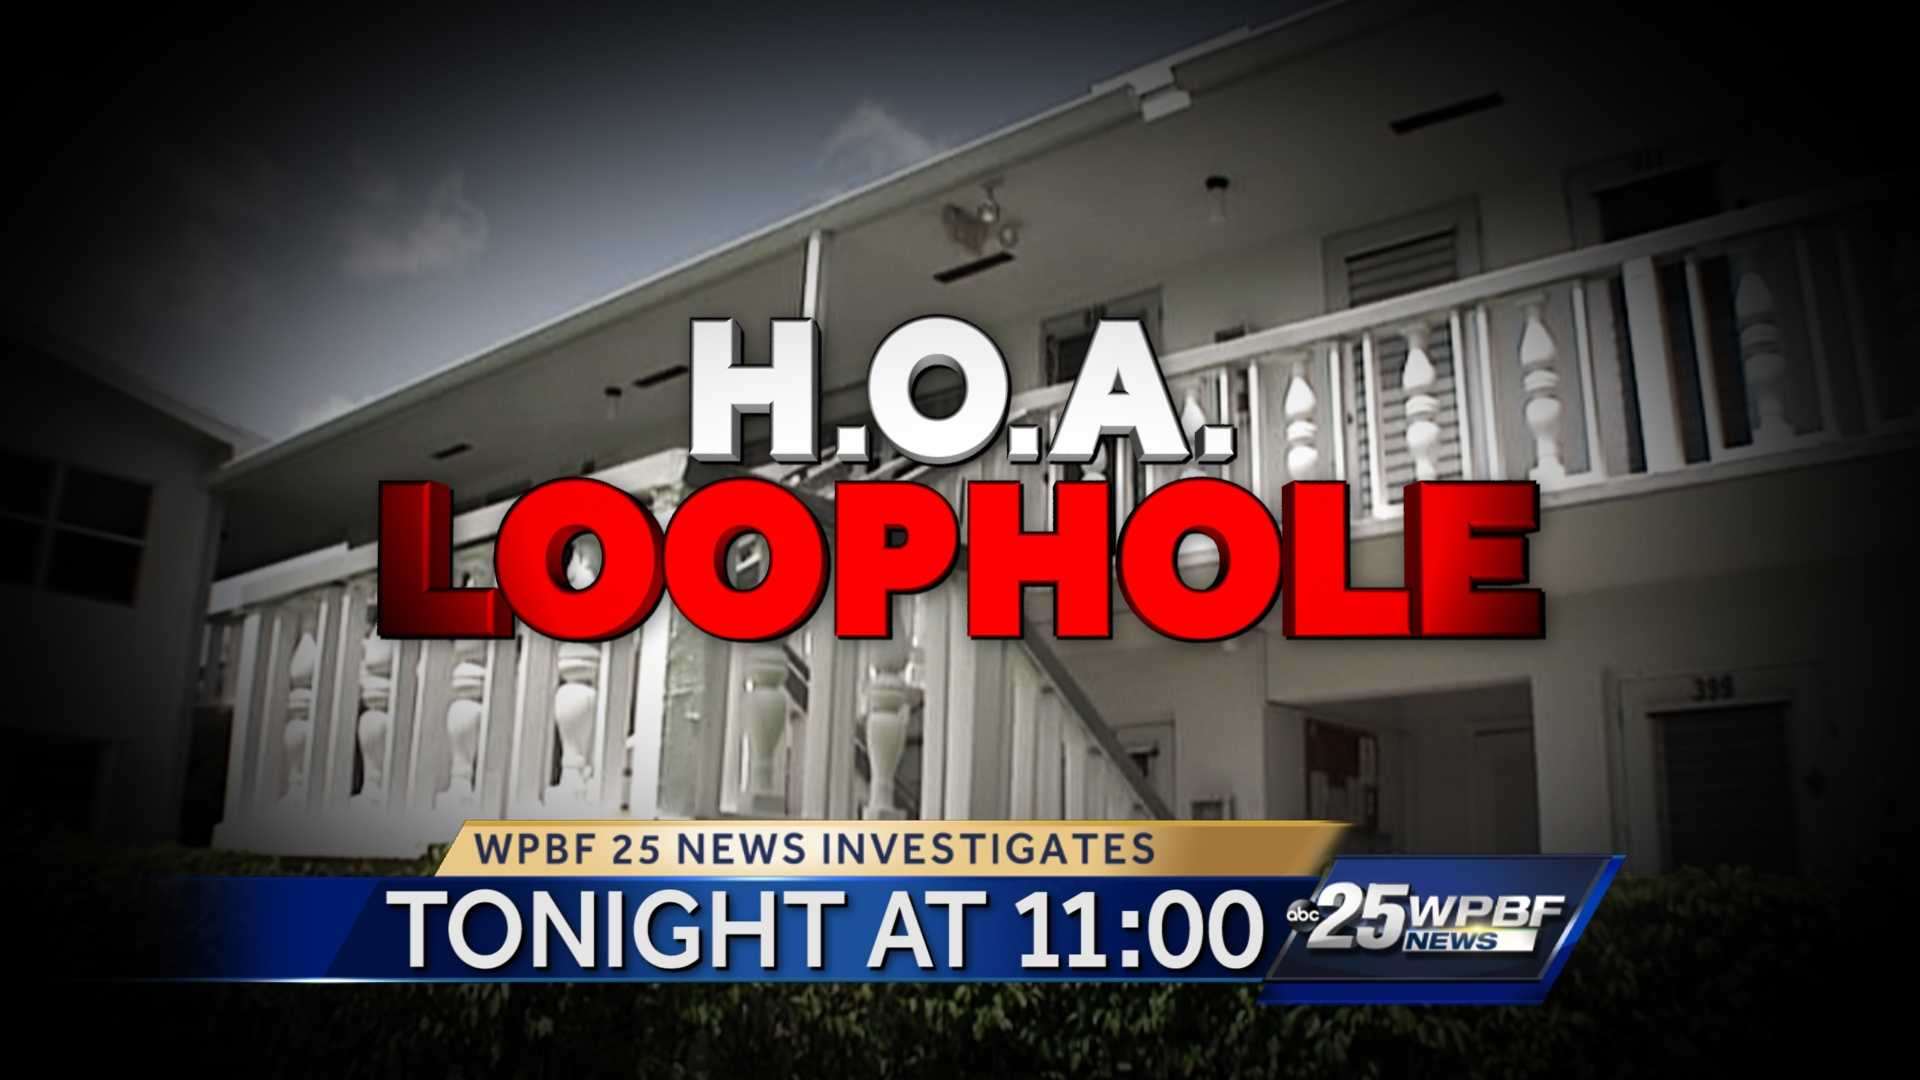 Tonight on WPBF 25 News at 11, the housing hostile takeover! The HOA loophole that could FORCE some local residents to sell their homes. What you can learn from their terrifying ordeal.